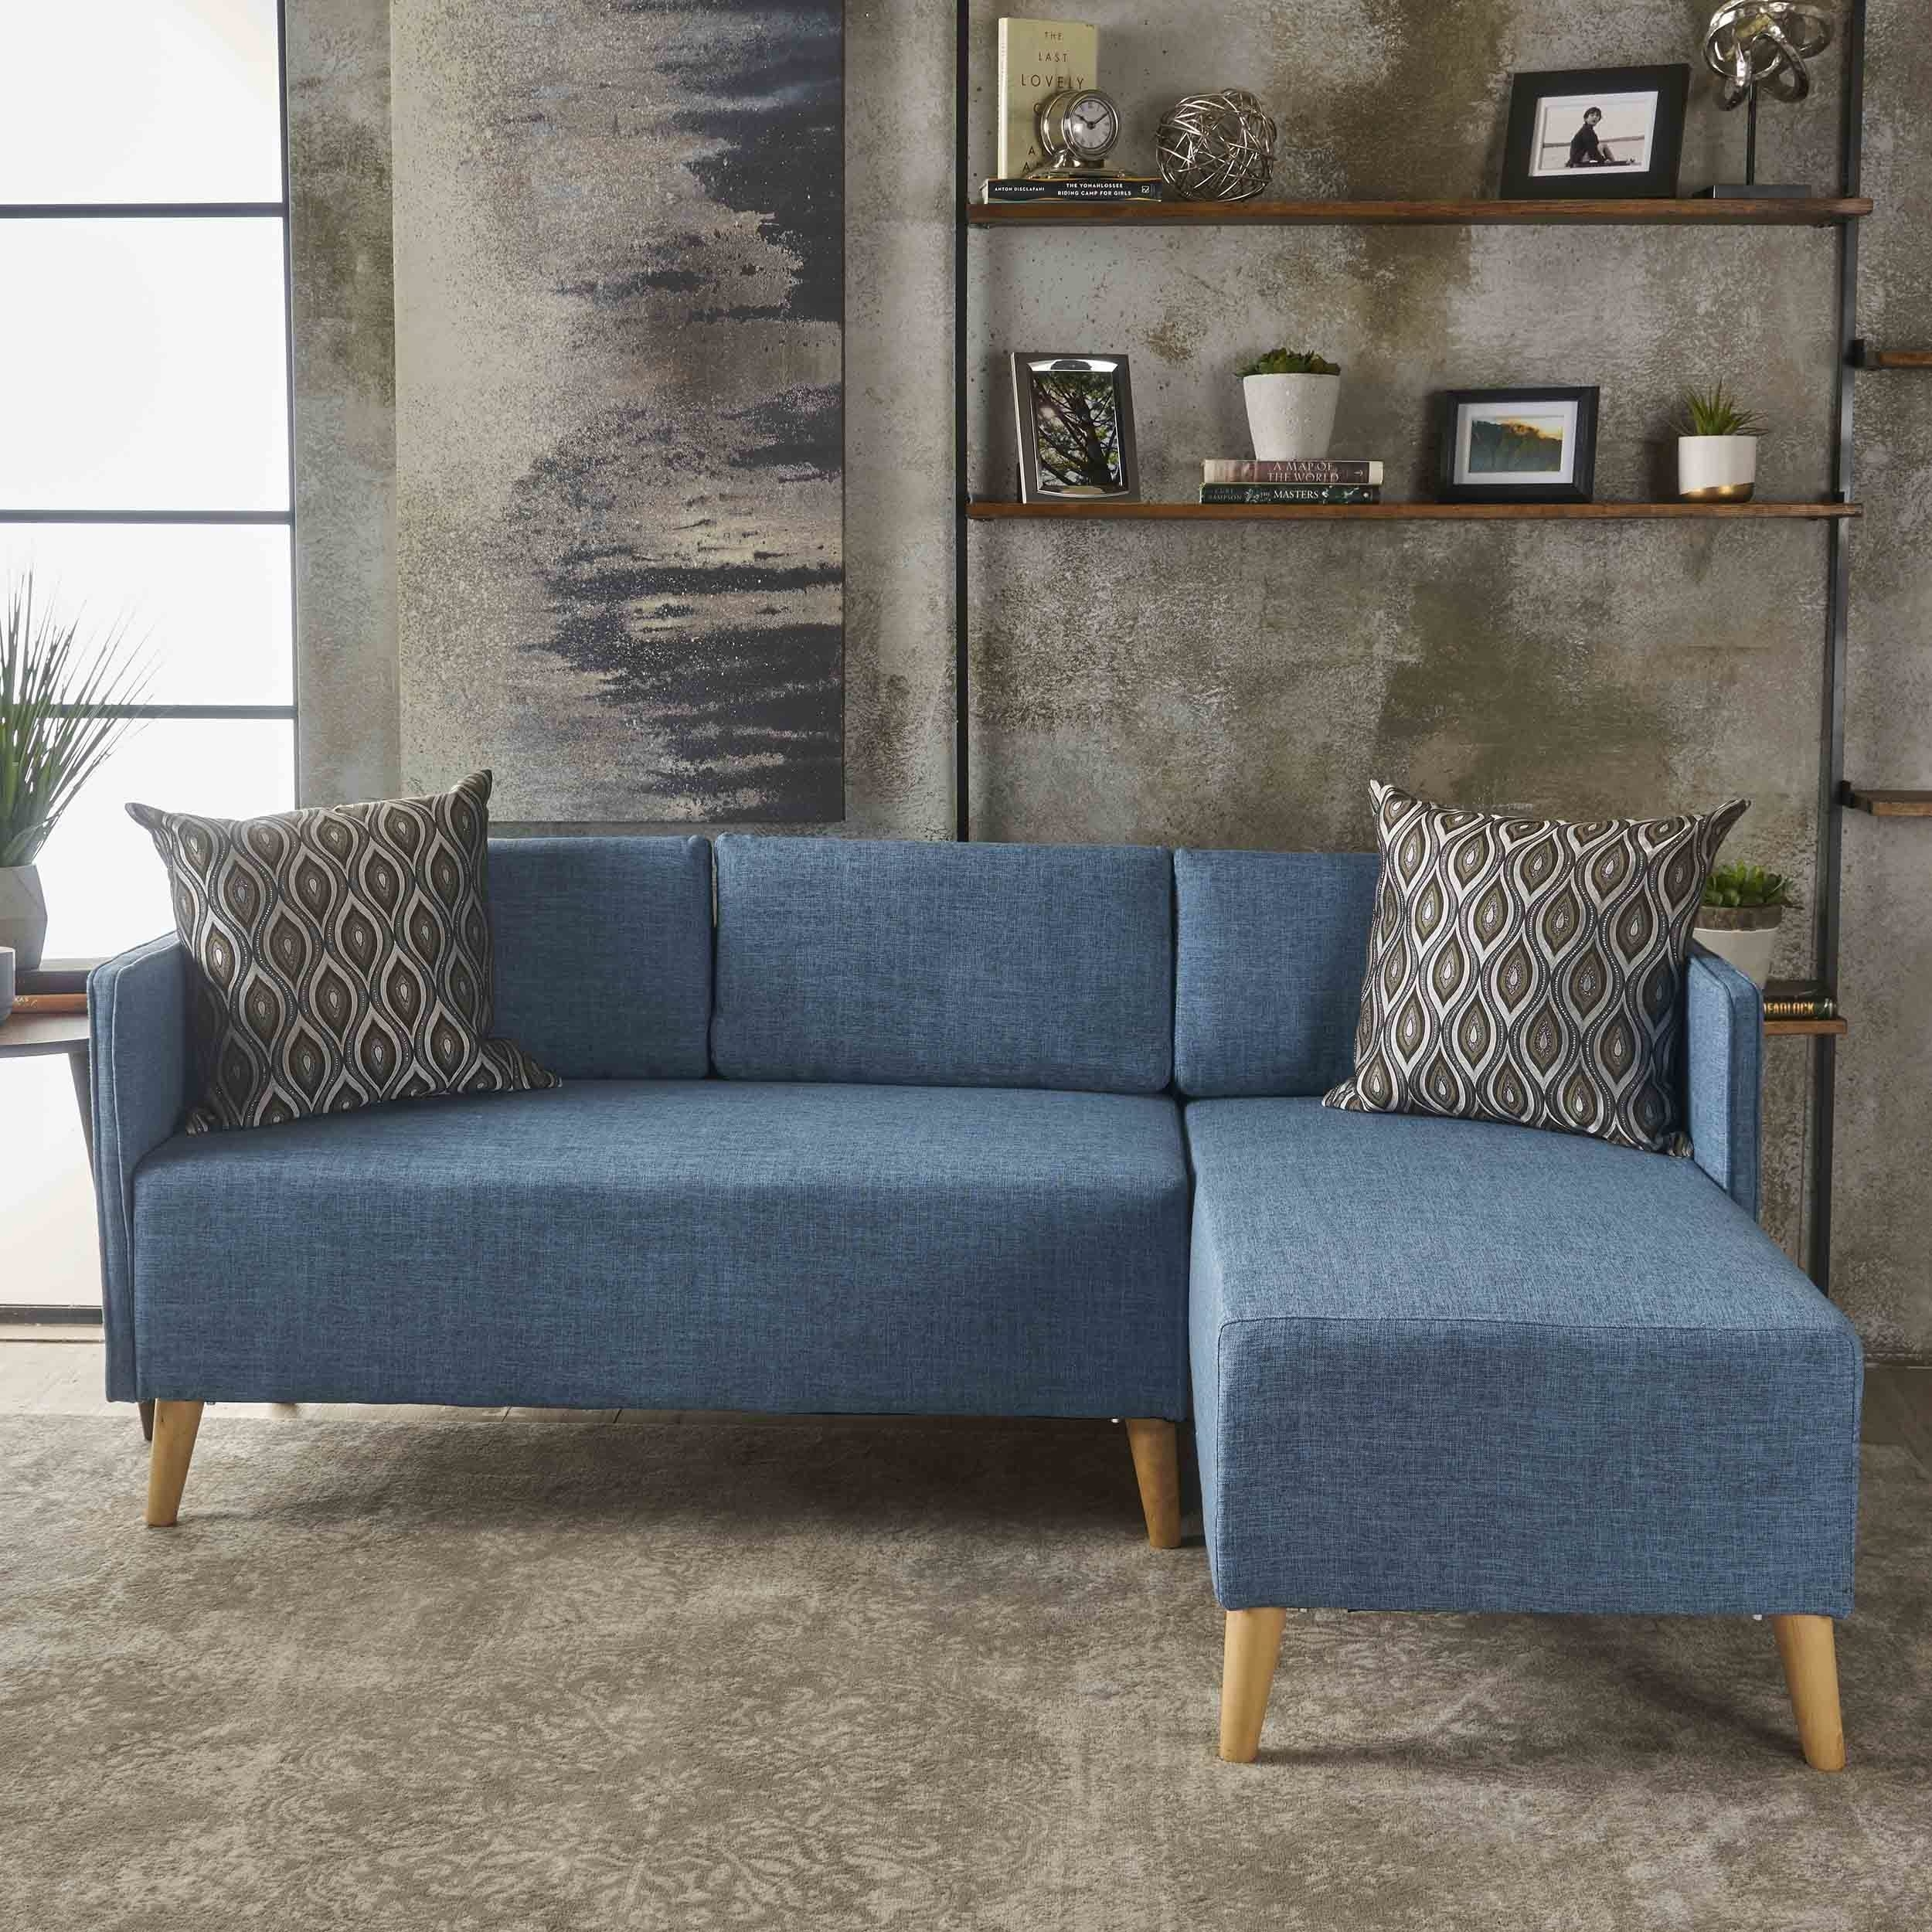 2 Piece Chaise Sectional Sofa | Baci Living Room within Tenny Cognac 2 Piece Left Facing Chaise Sectionals With 2 Headrest (Image 4 of 30)